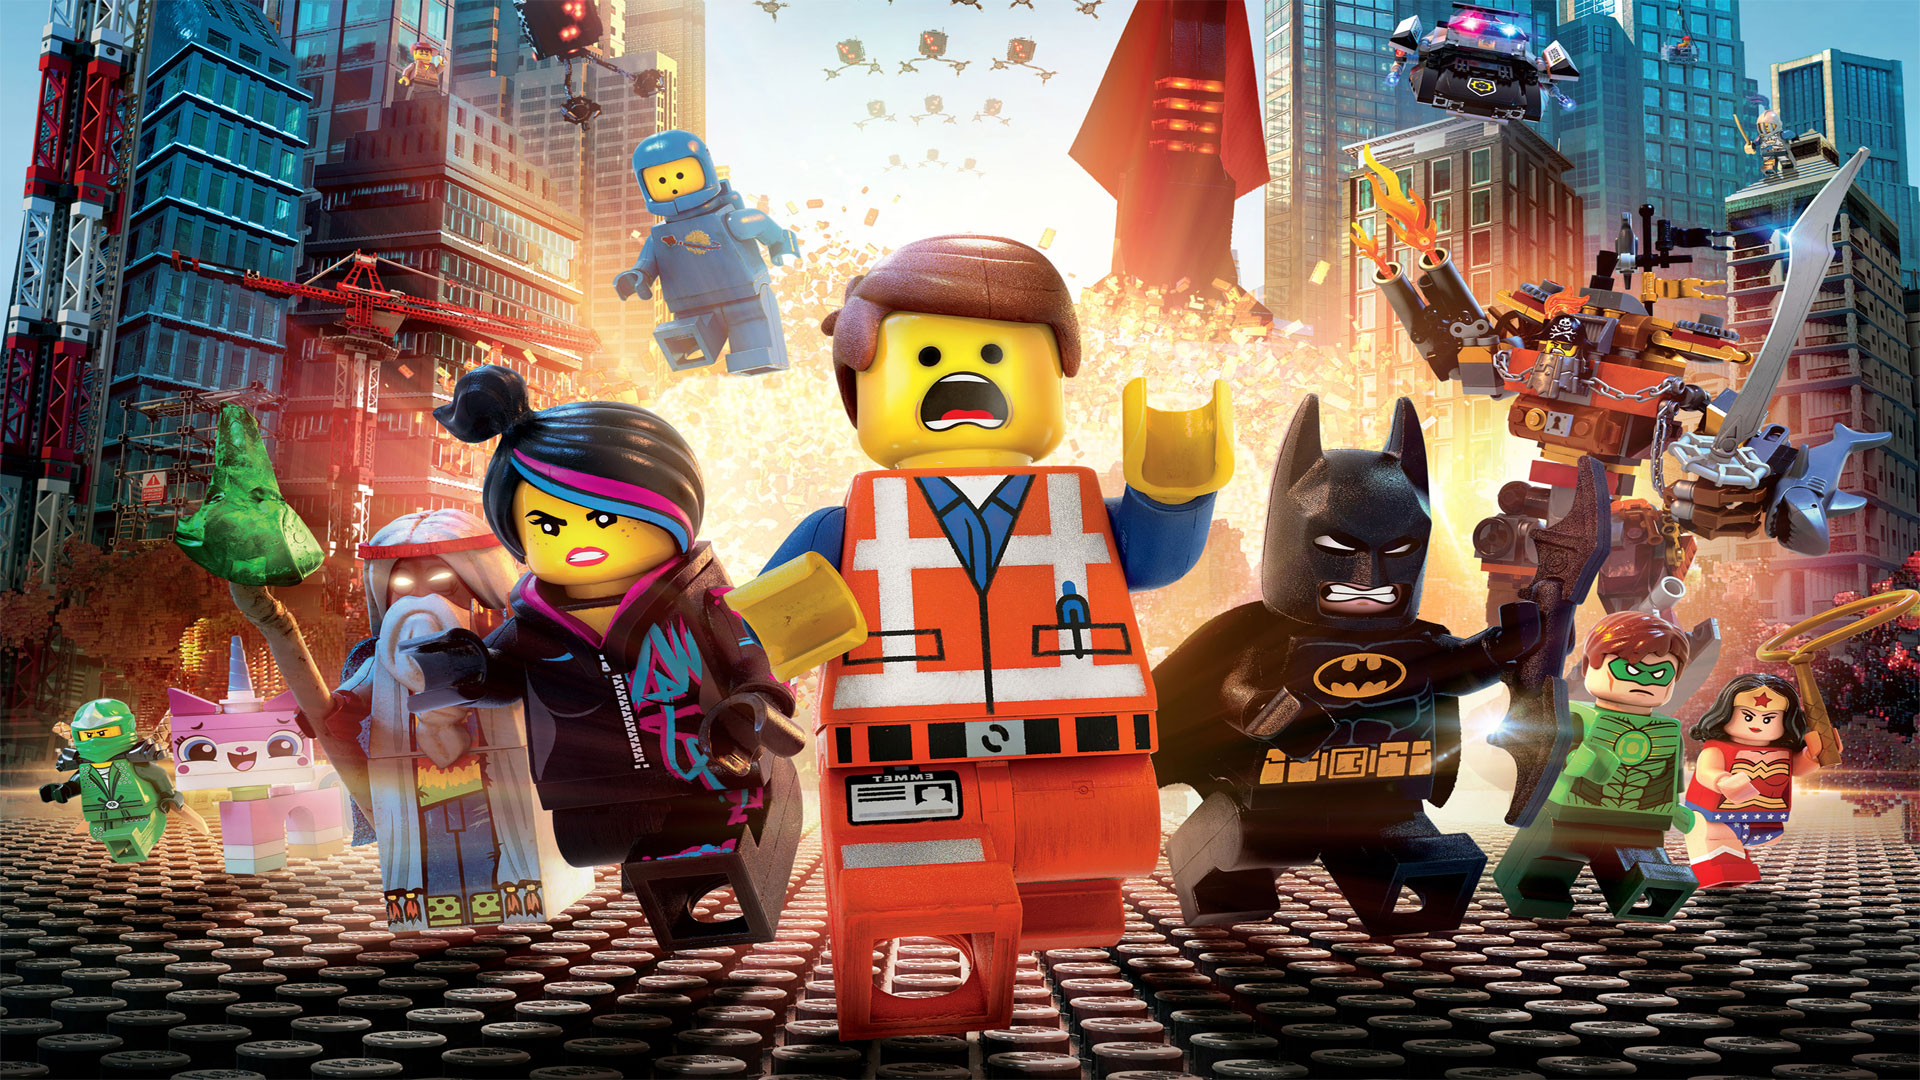 Download. Description wallpaper: Lego Movie ...